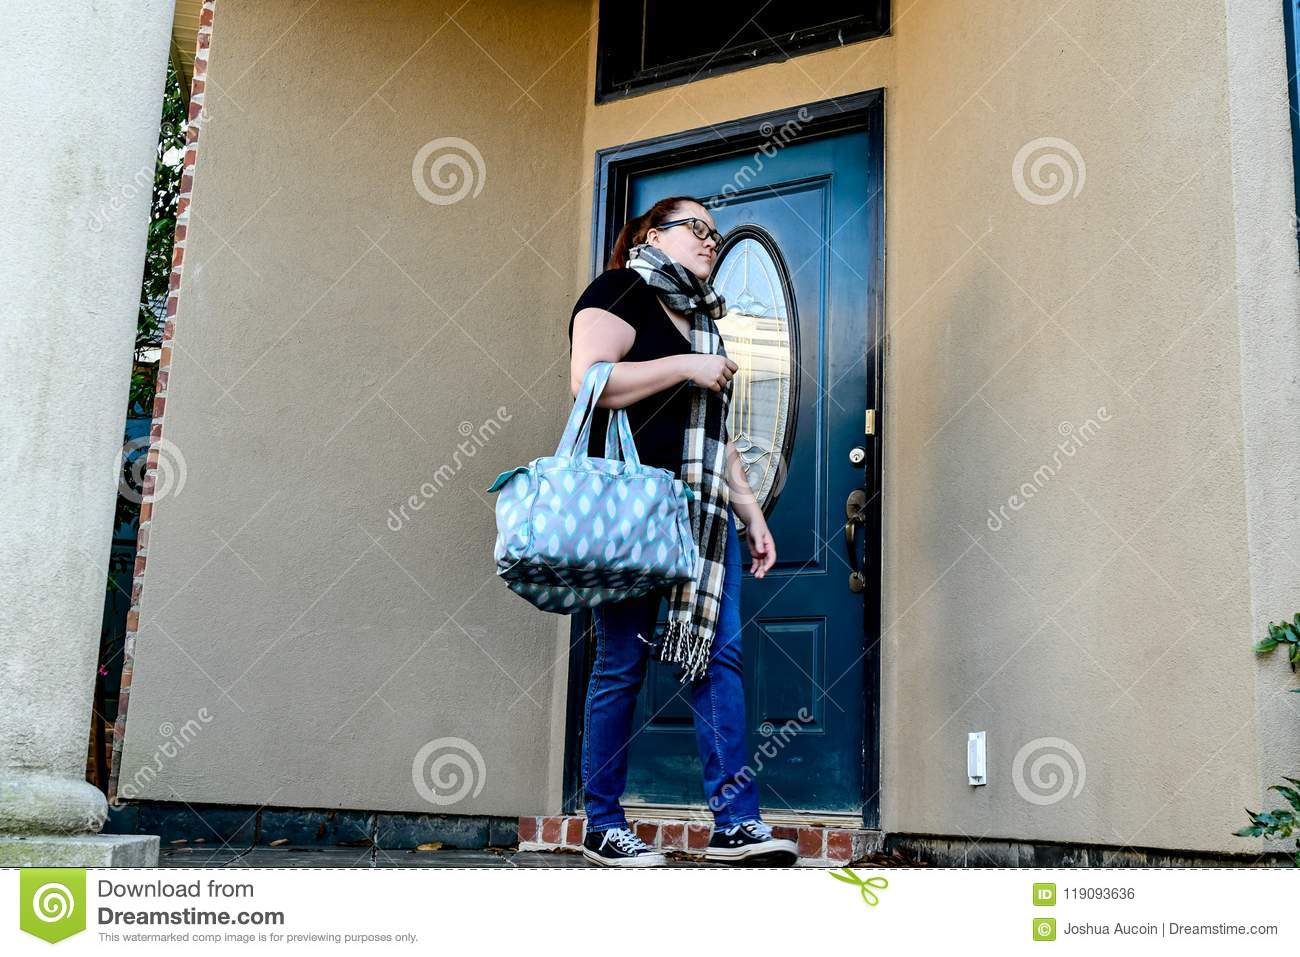 A woman locks her front door as she leaves home with a duffel bag over one arm.